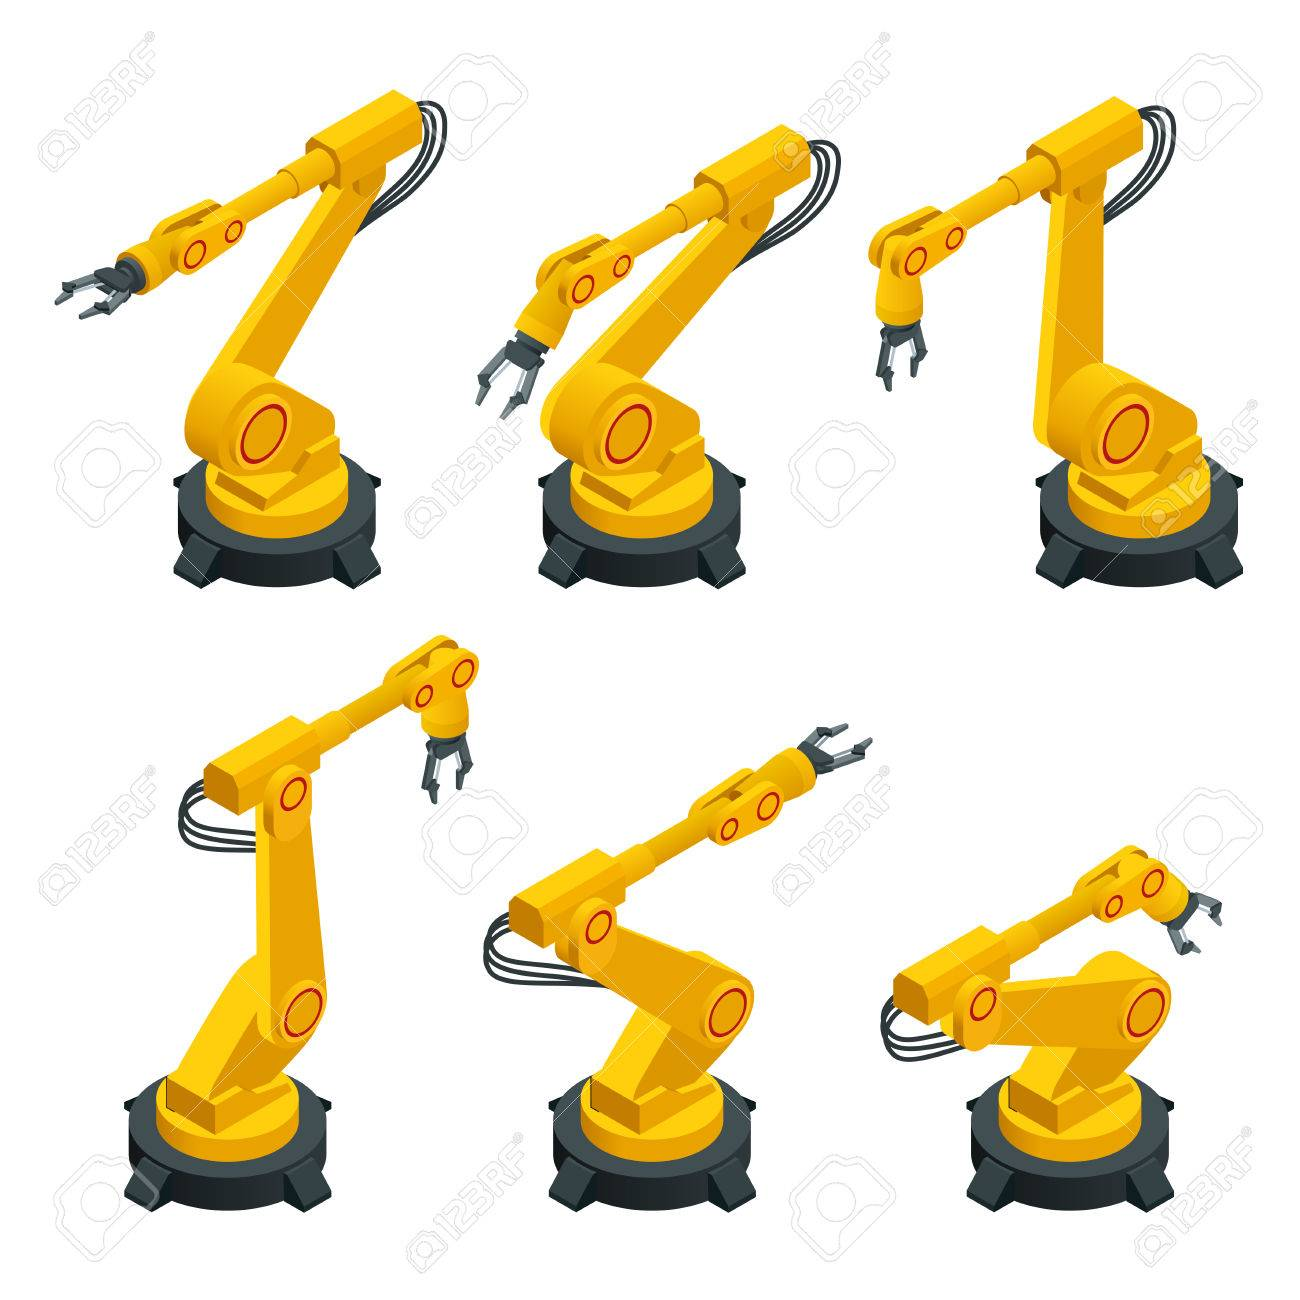 Isometric robotic arm, hand, industrial robot flat vector icons